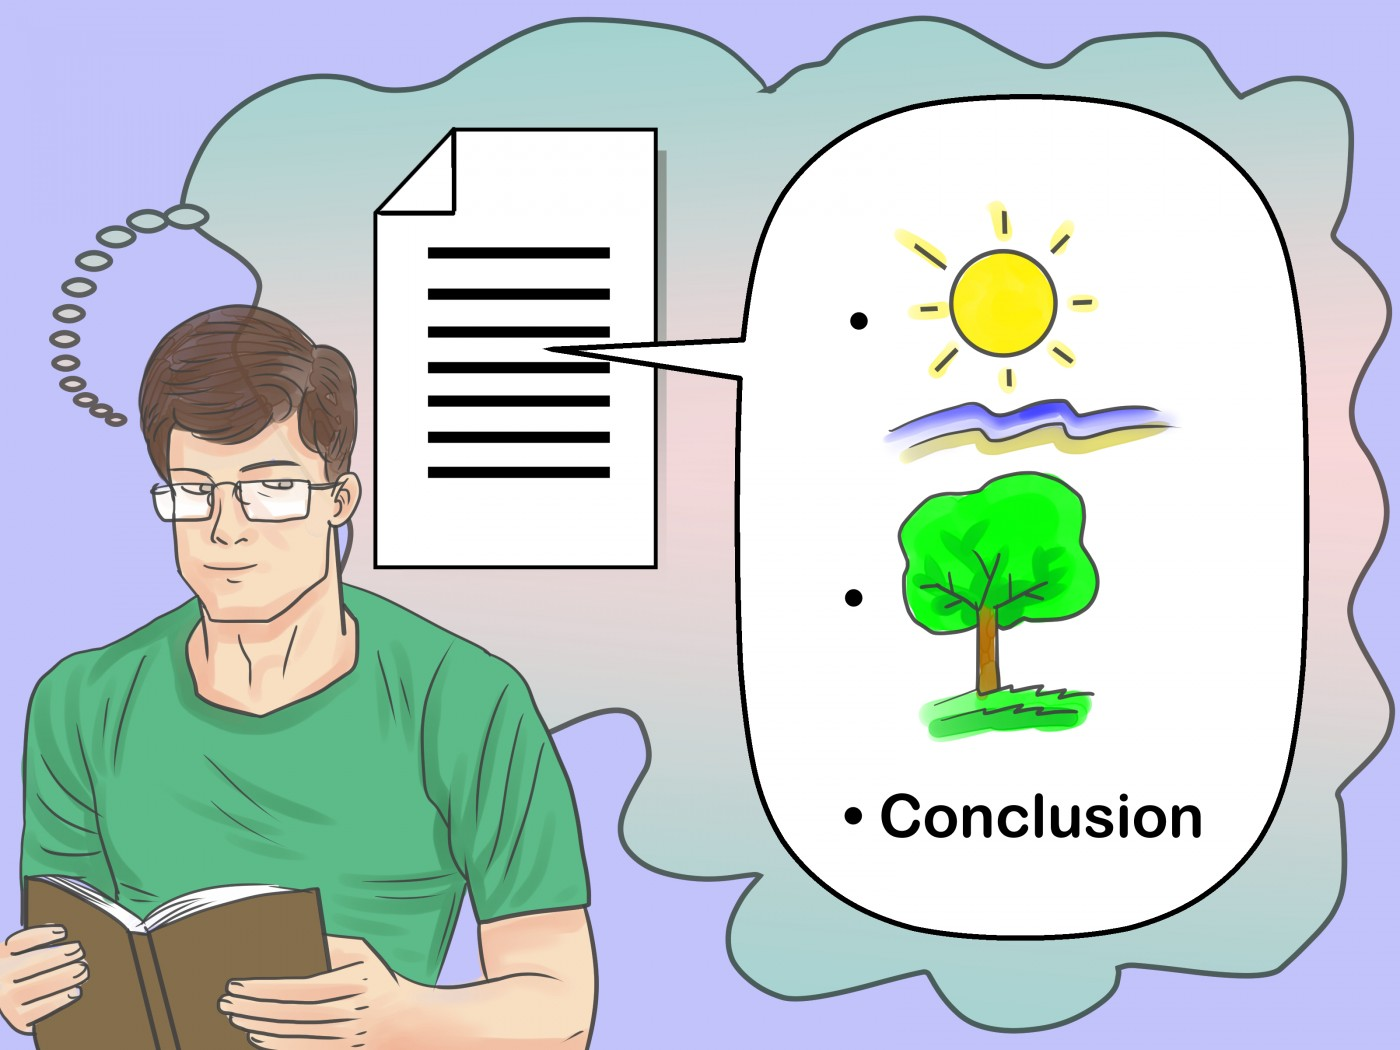 016 Essay Example Compare Contrast Write And Step Version Fascinating Topics Graphic Organizer Julius Caesar Answers High School 1400